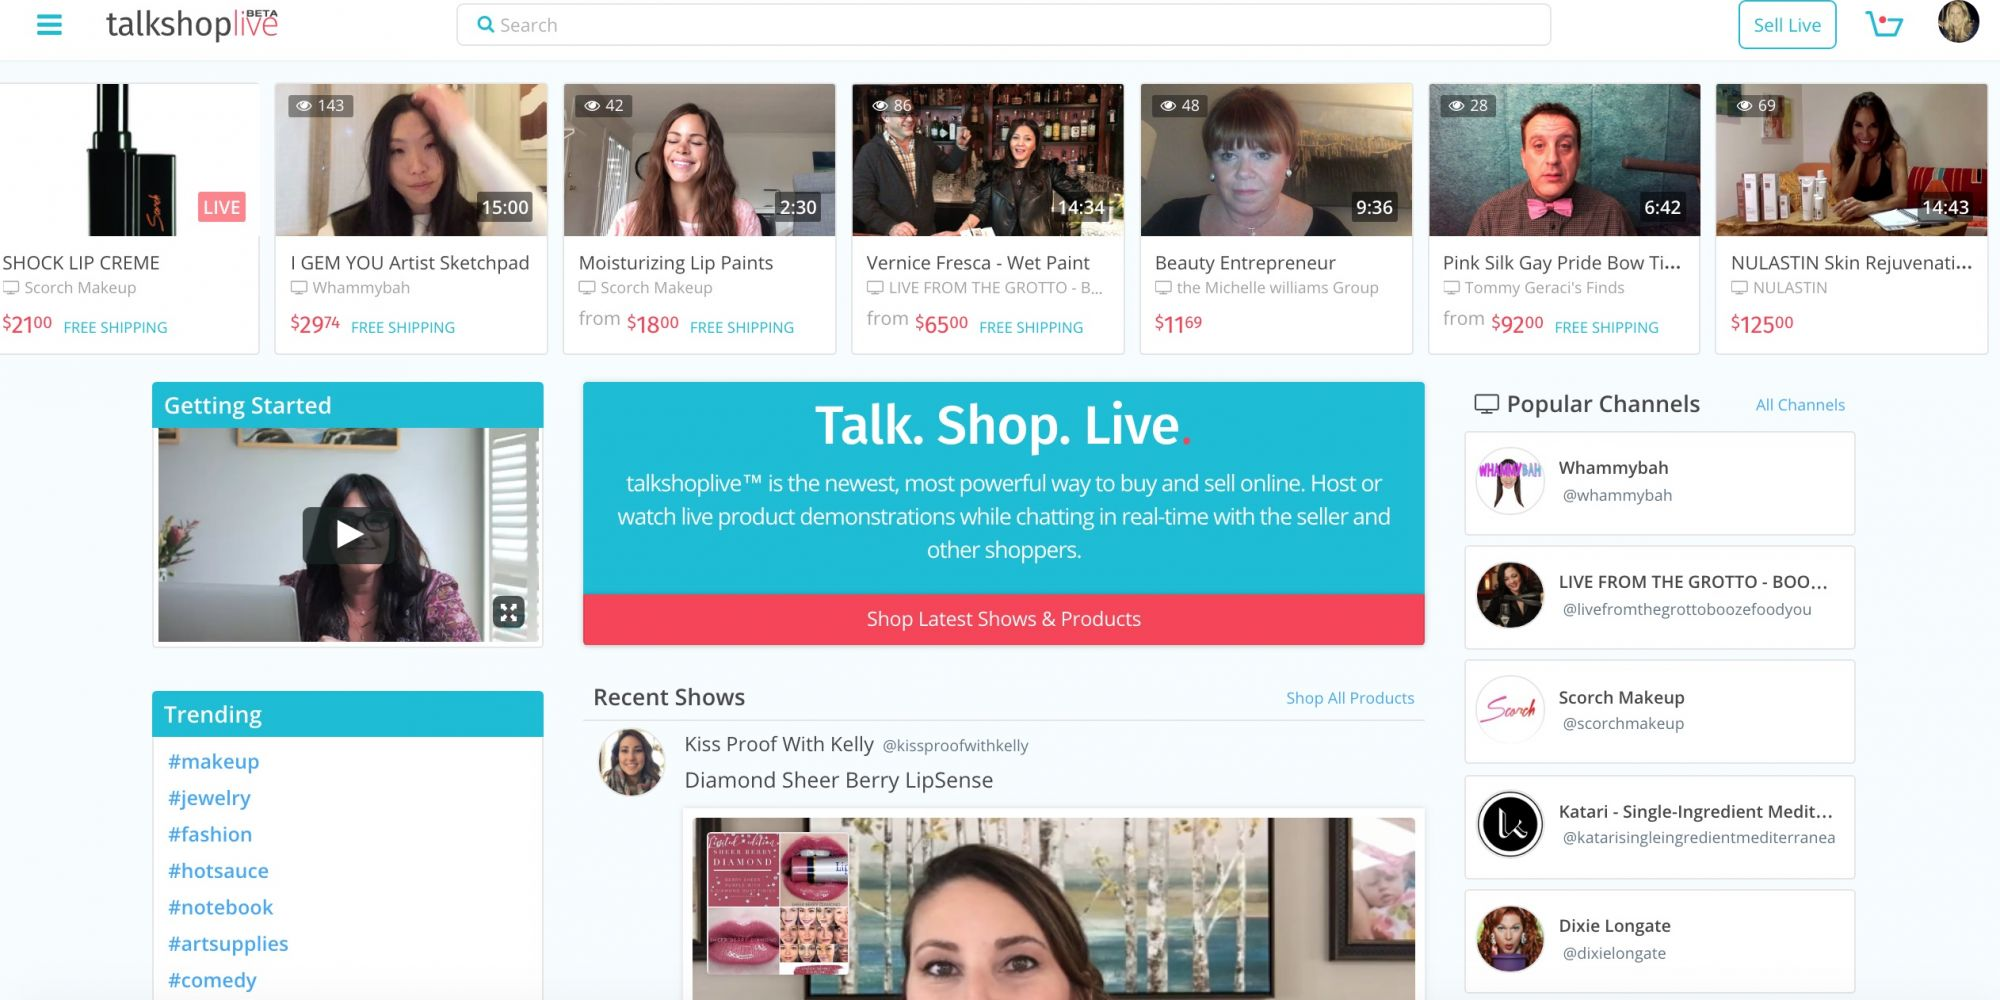 Talkshoplive Levels The Video Commerce Playing Field For Small Brands